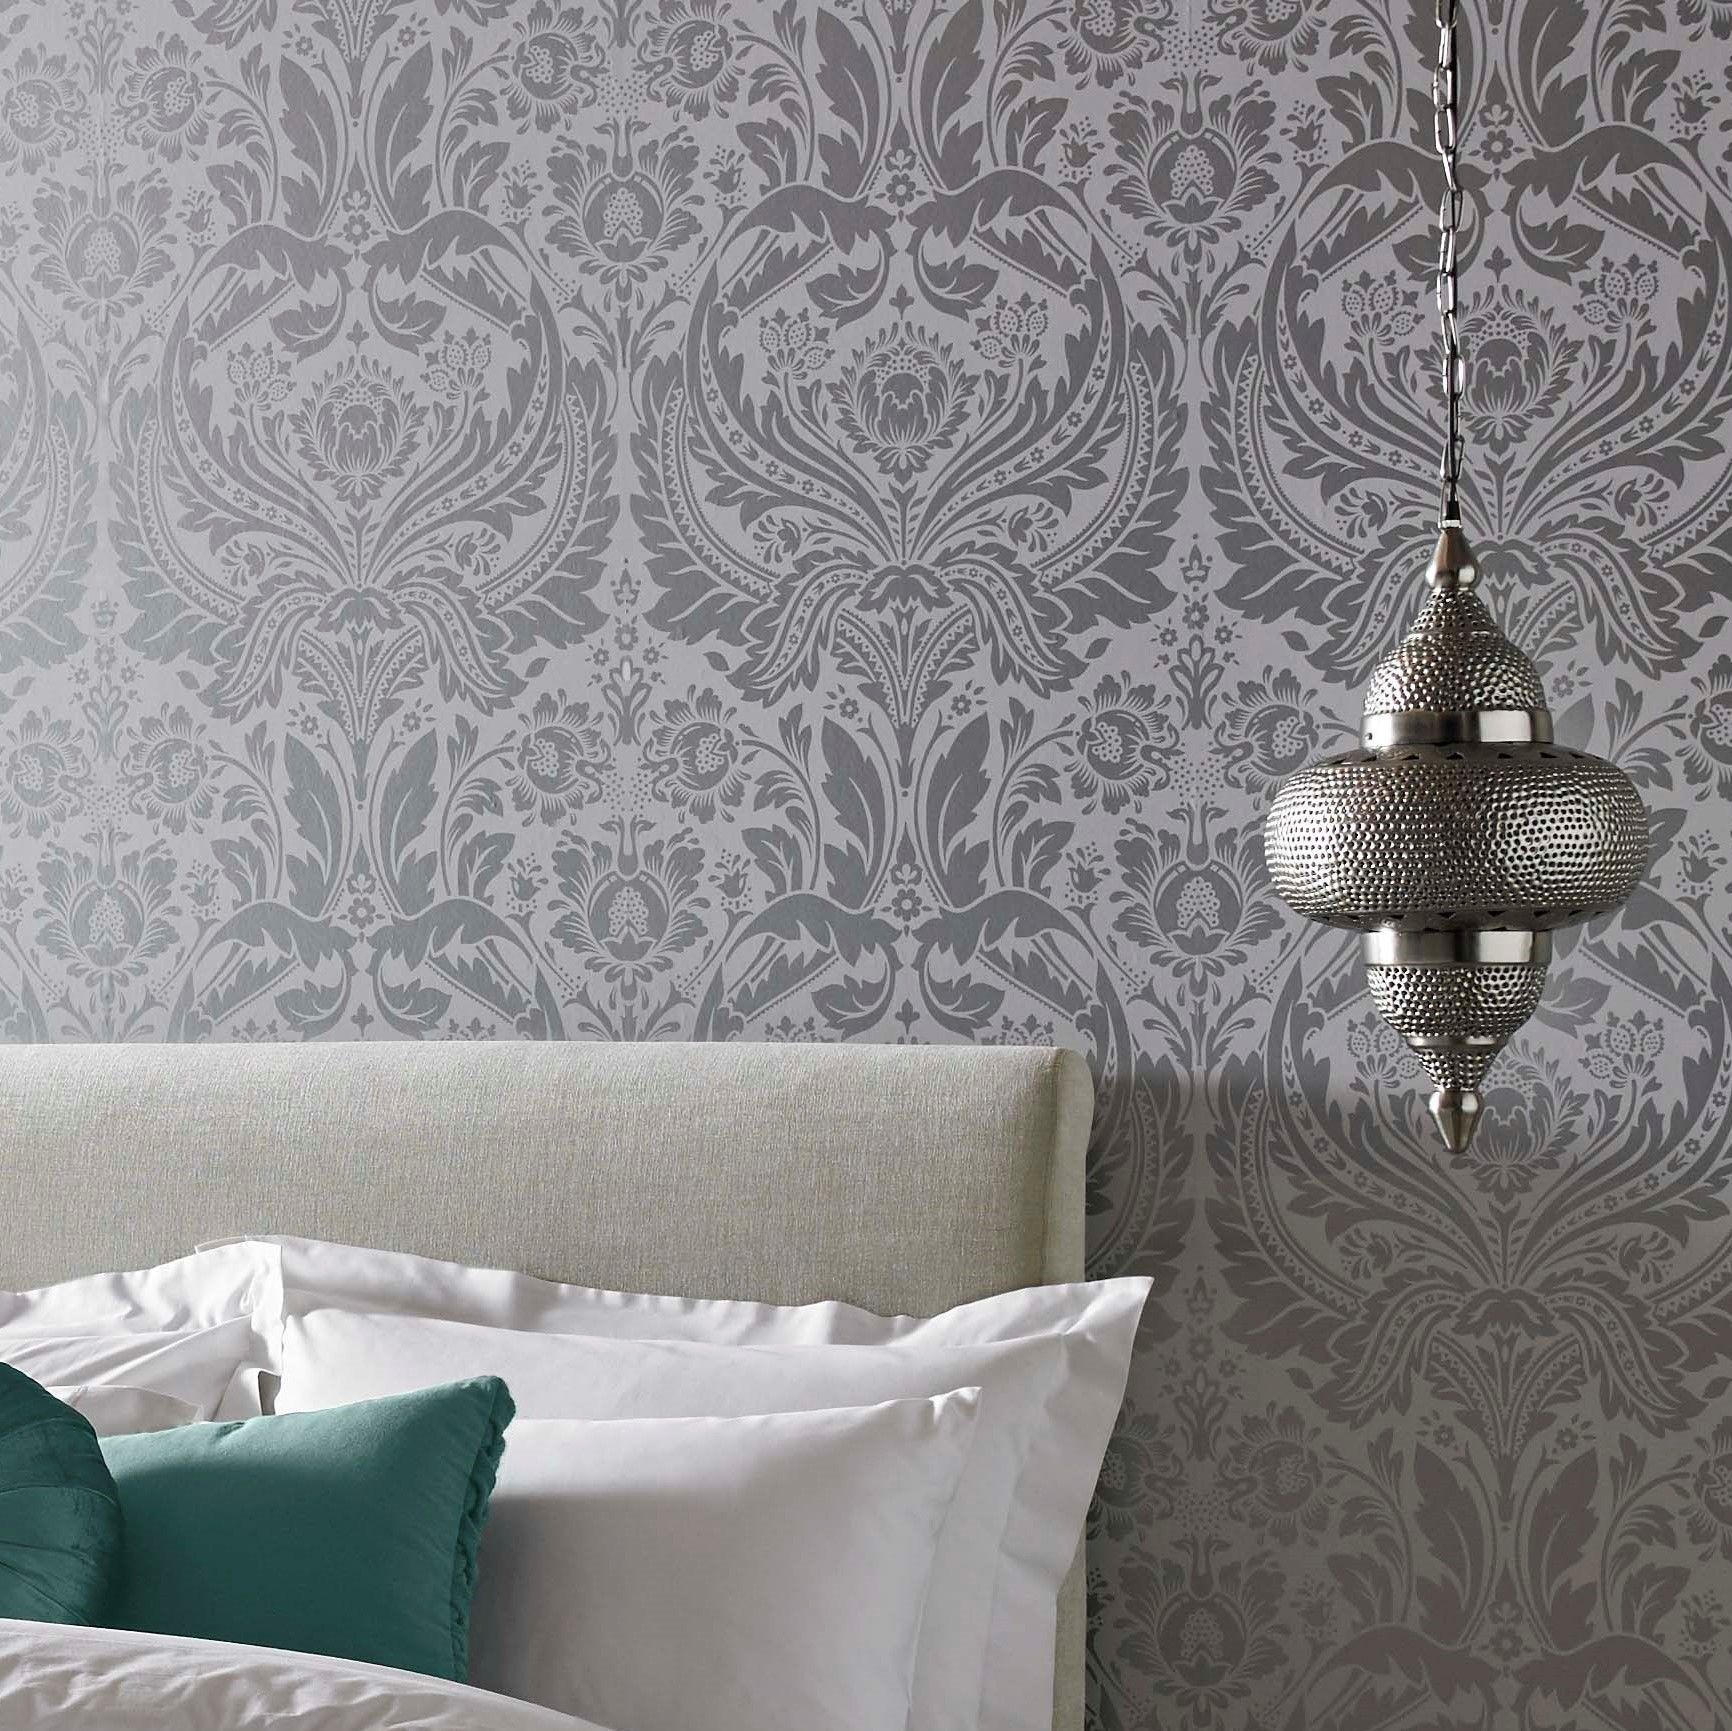 Create A French Inspired Room With Vintage Wallpaper Graham Brown Uk Silver Wallpaper Silver Wallpaper Metallic Room Inspiration